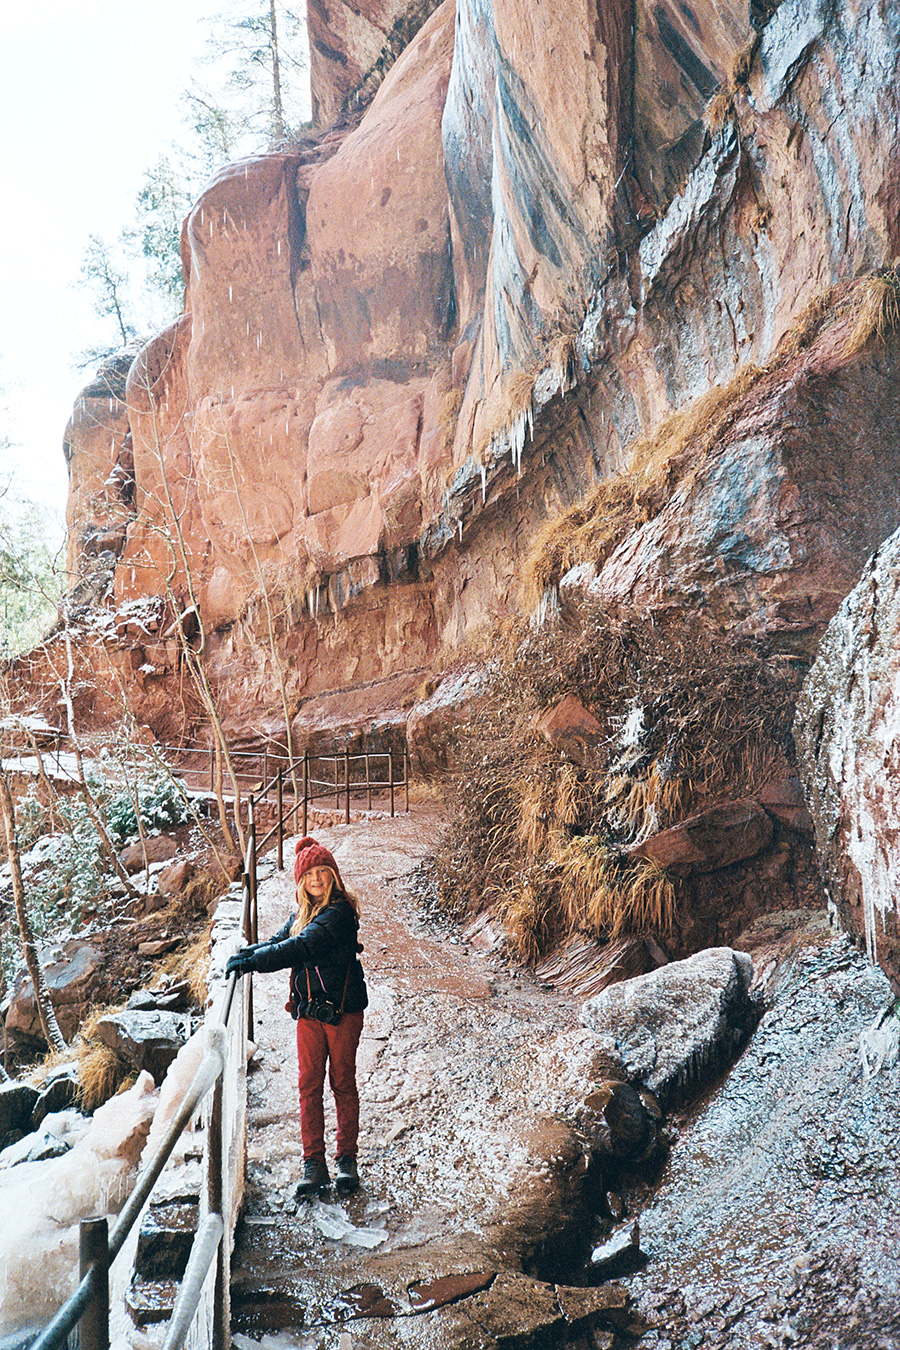 Icy morning hike up to the Emerald Pools. I really really wanted to hike Angel's Landing with Grace on this trip but the snow and ice on all the trails left it closed :(